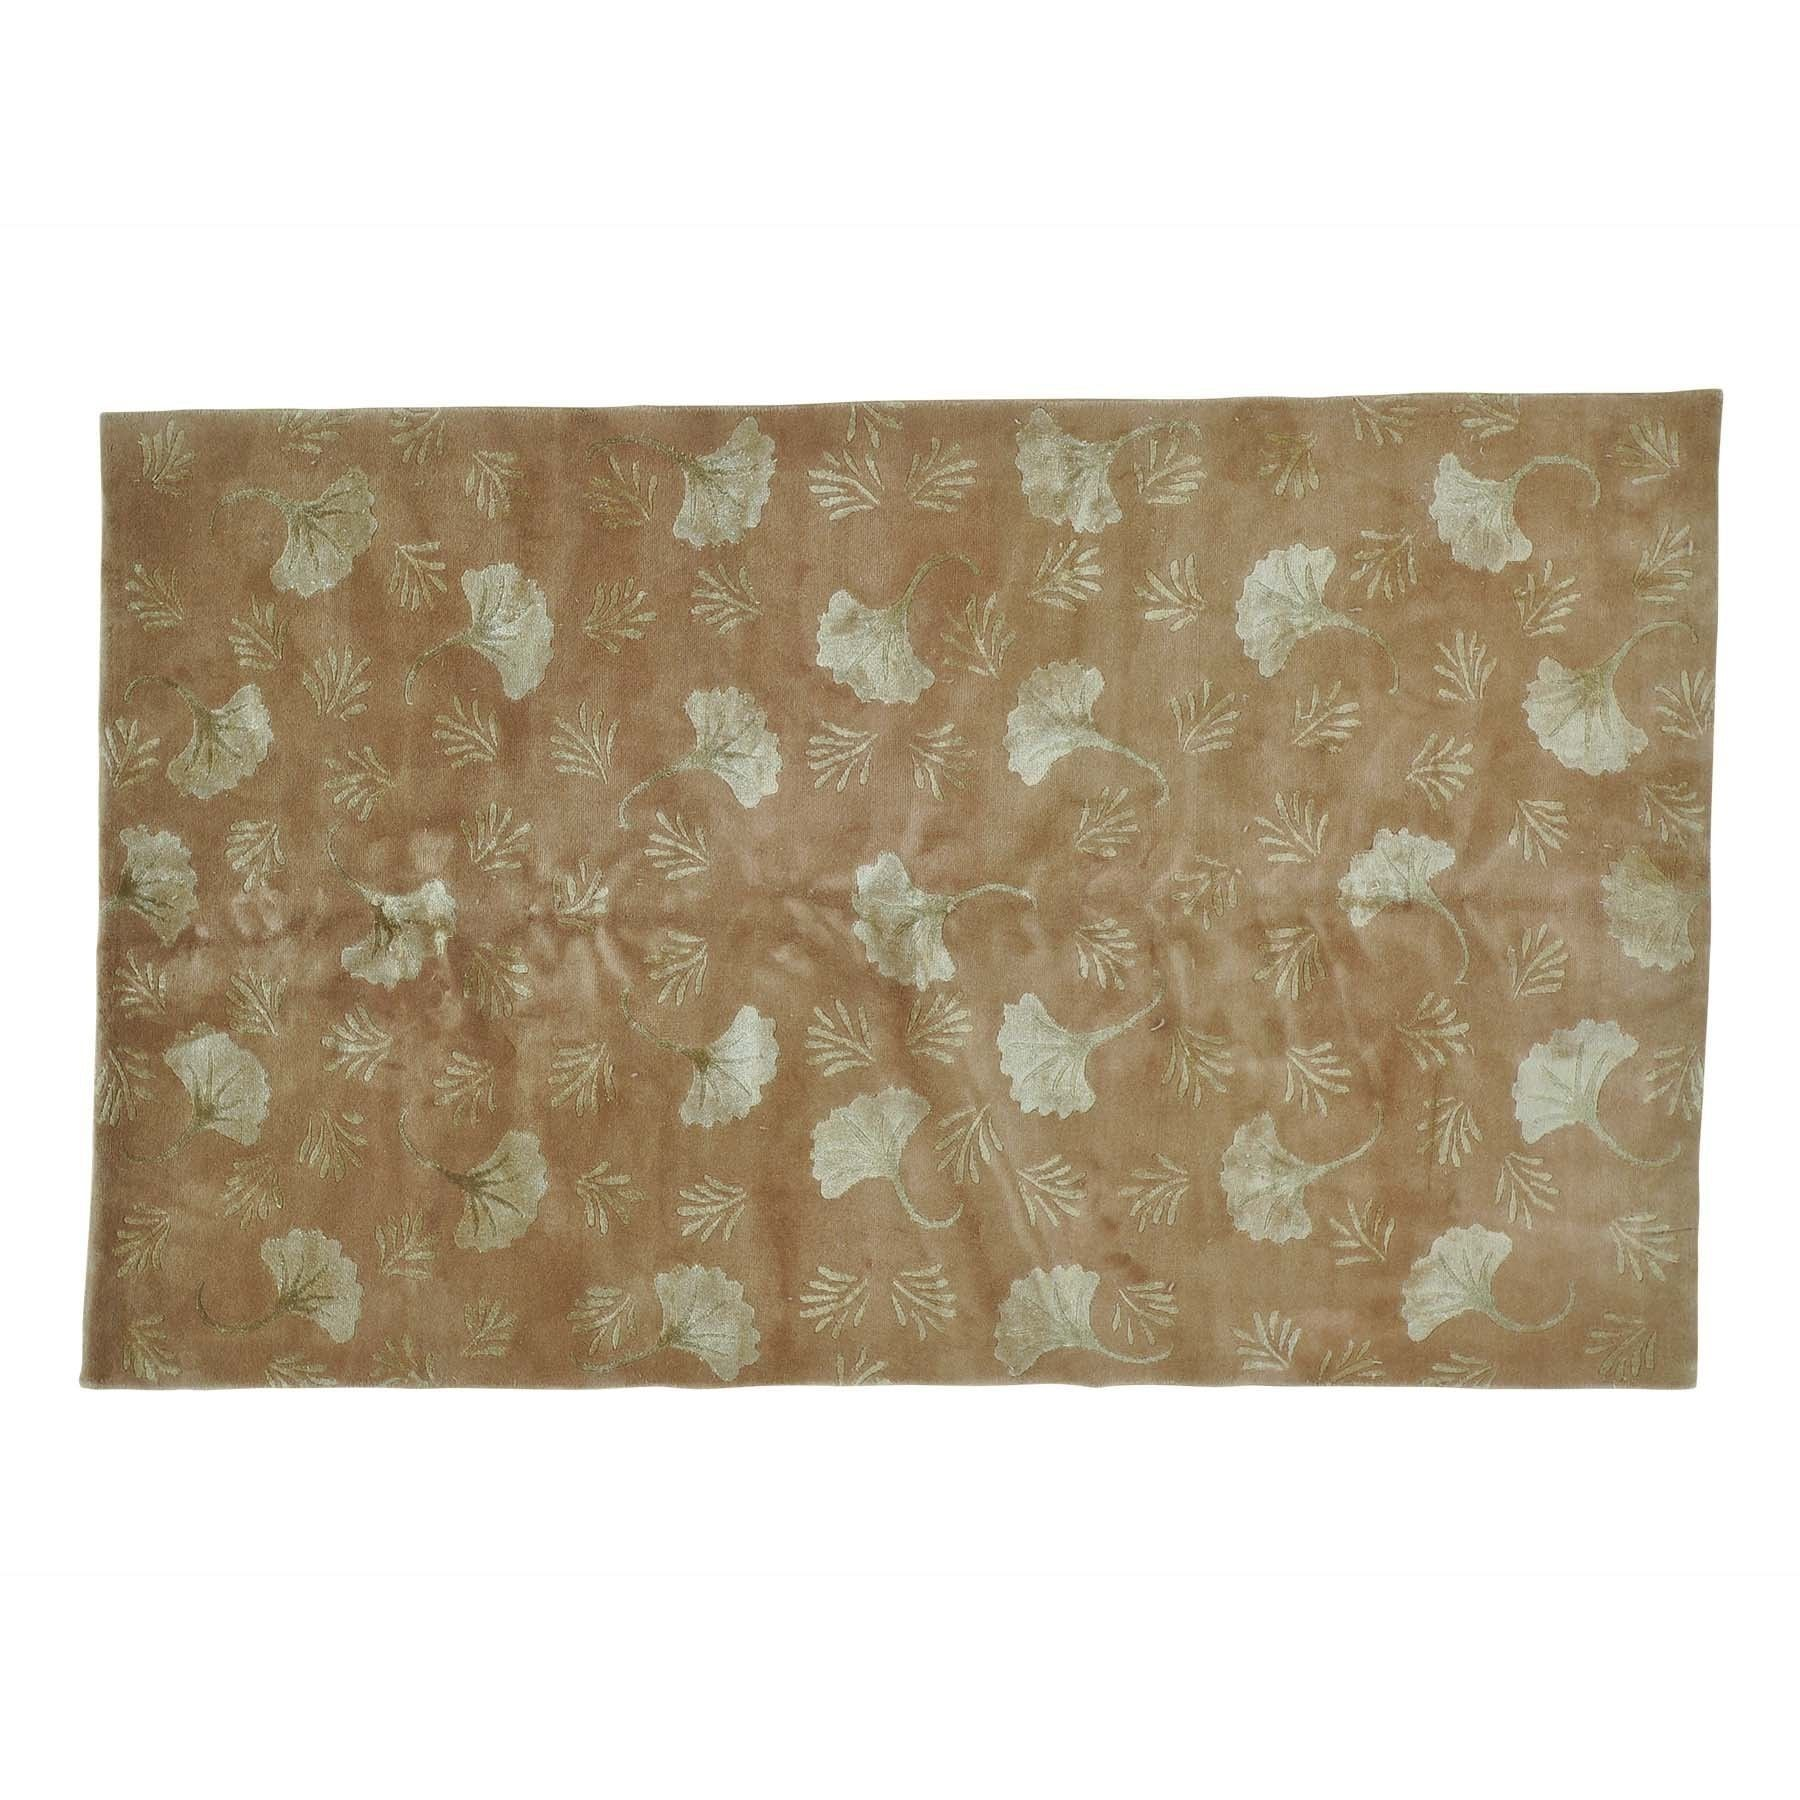 1800getarug Nepali Wool and Floral Design Hand Knotted Rug